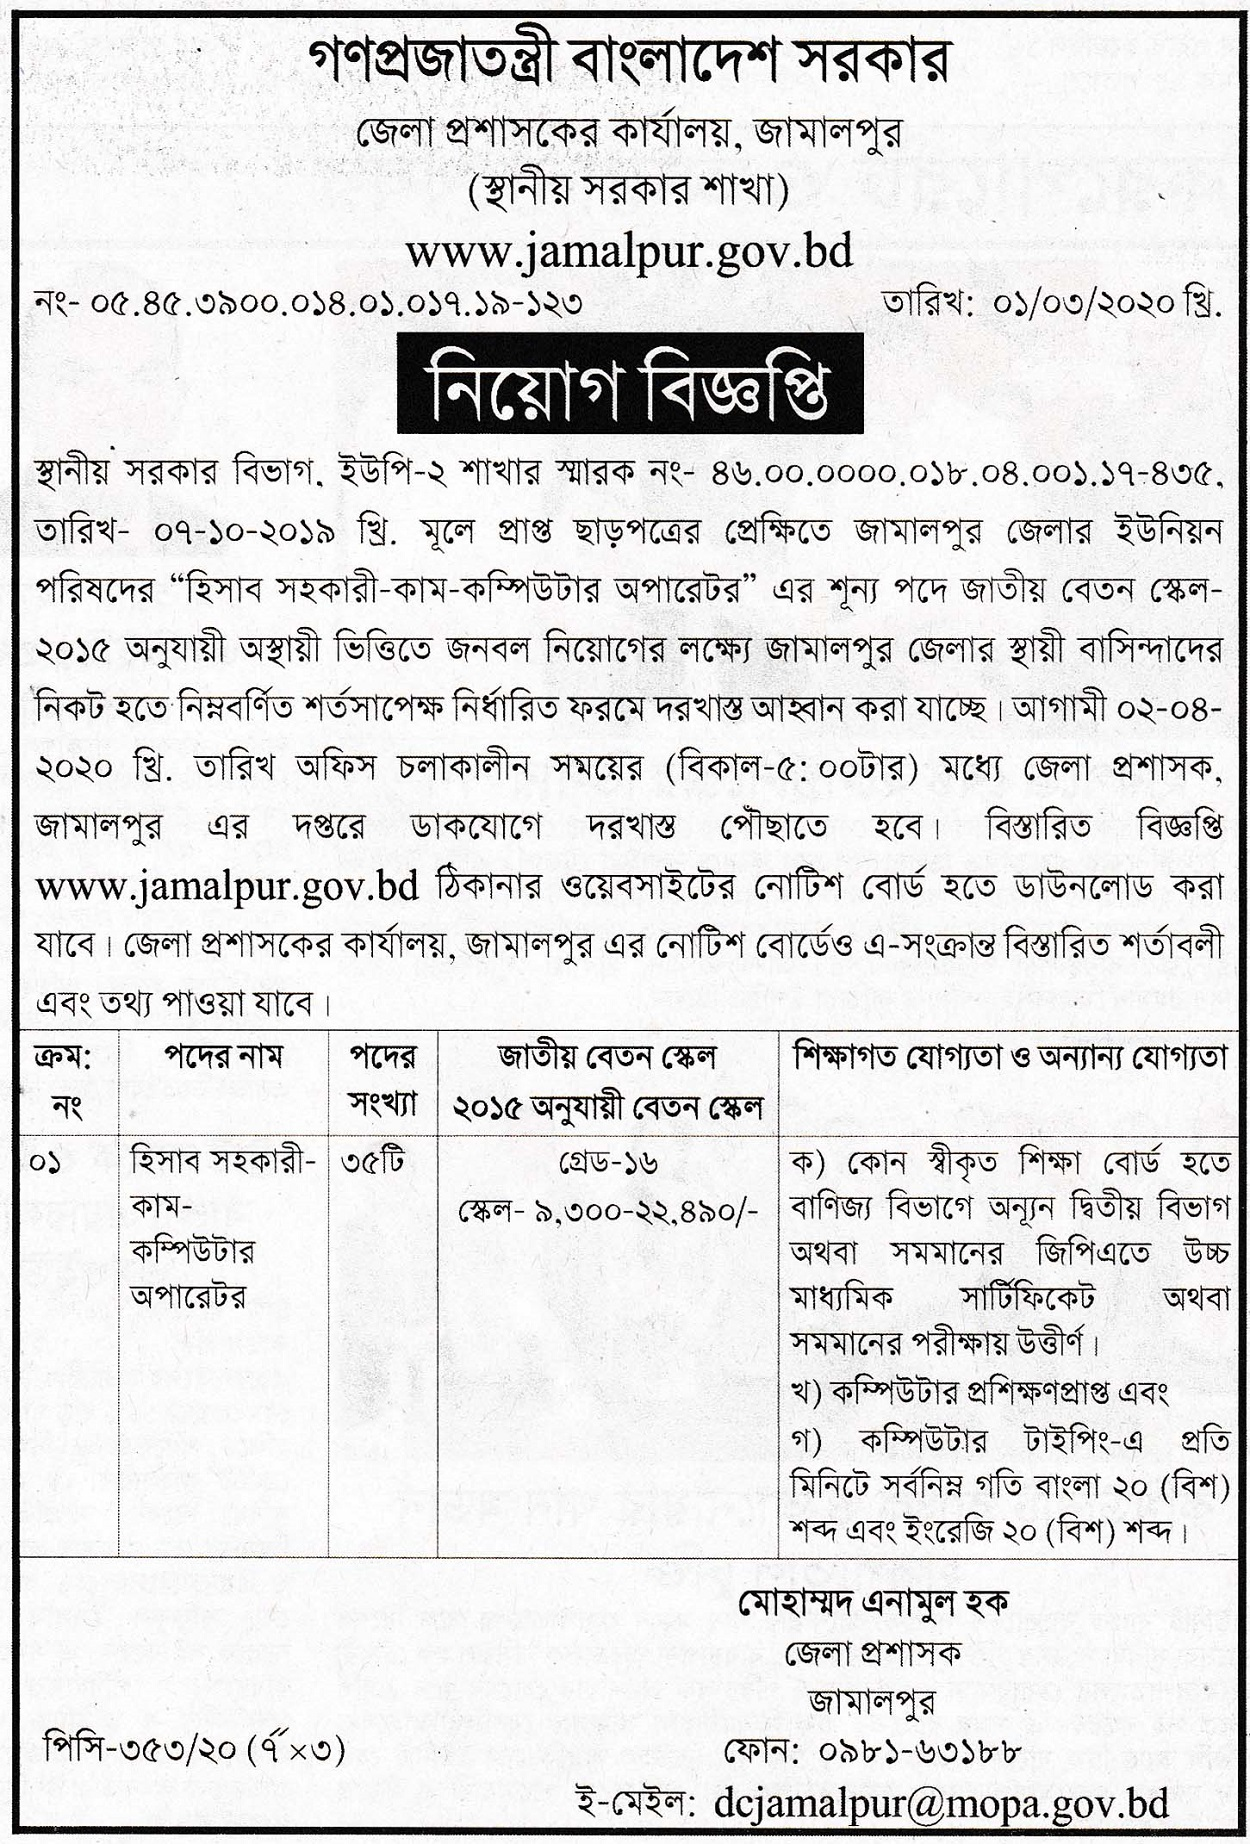 Jamalpur Deputy Commissioner's Office Job Circular 2020